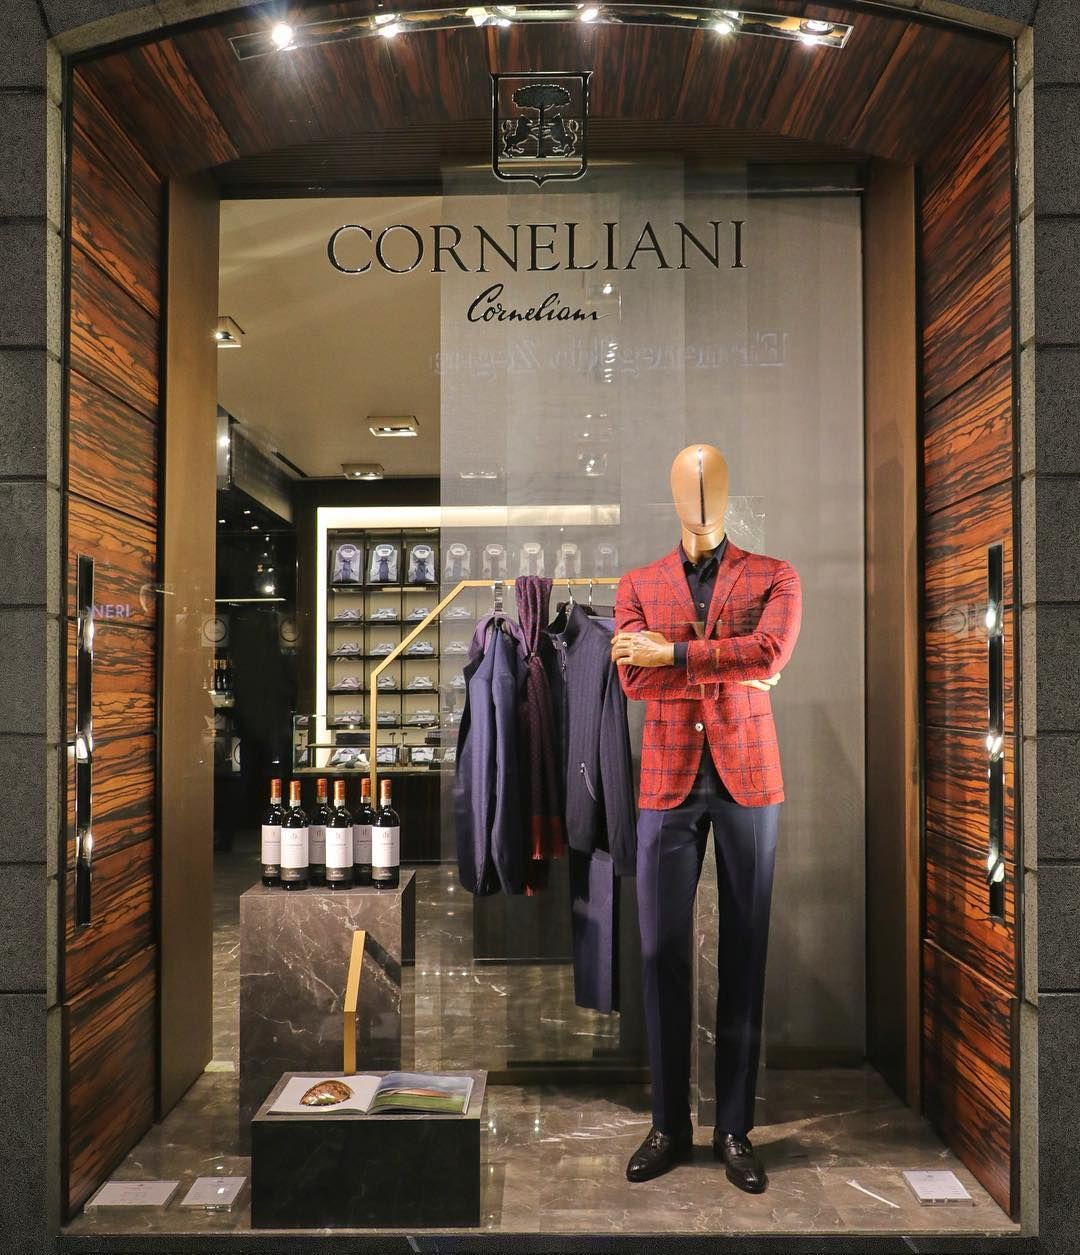 Cornelliani Via Montenapoleone Milan Italy Time Waits For No Man Pinned By Ton Van Der Veer Clothing Store Design Clothing Store Interior Store Design